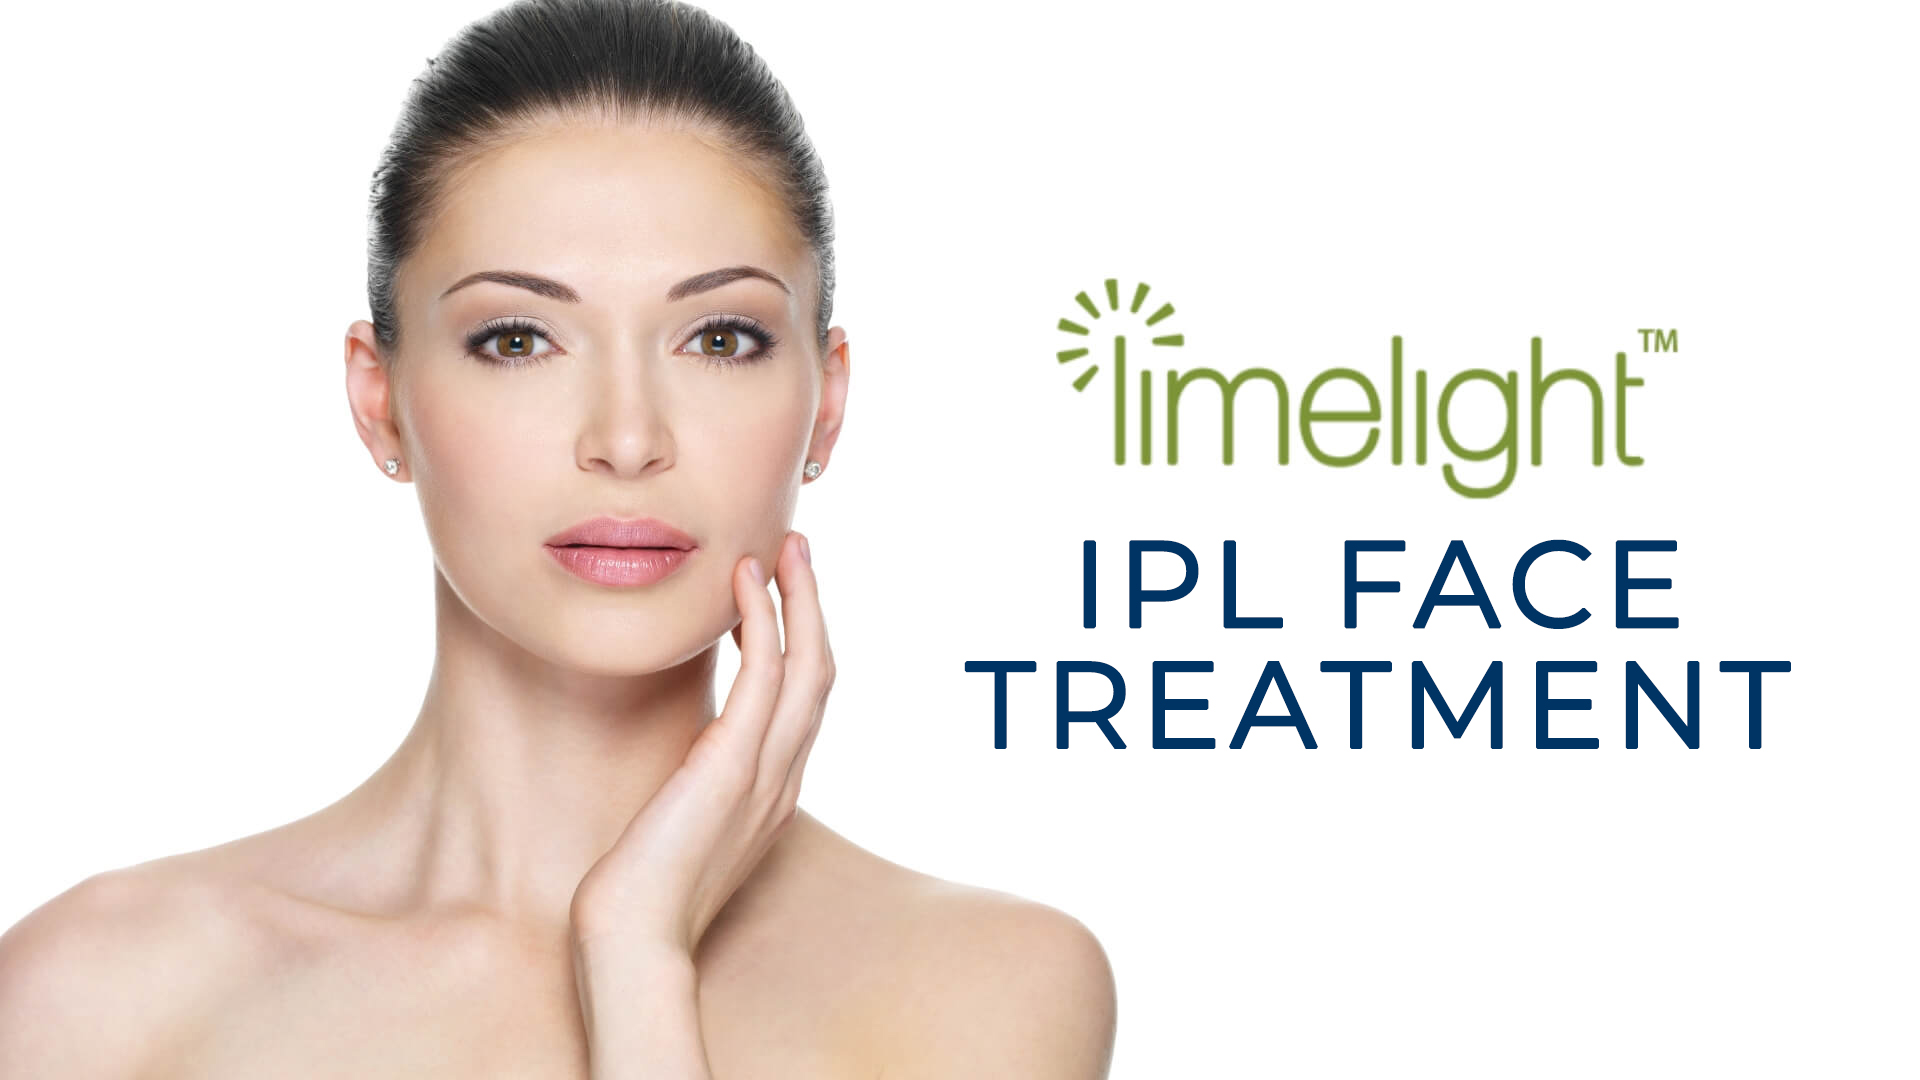 limelight ipl face treatment